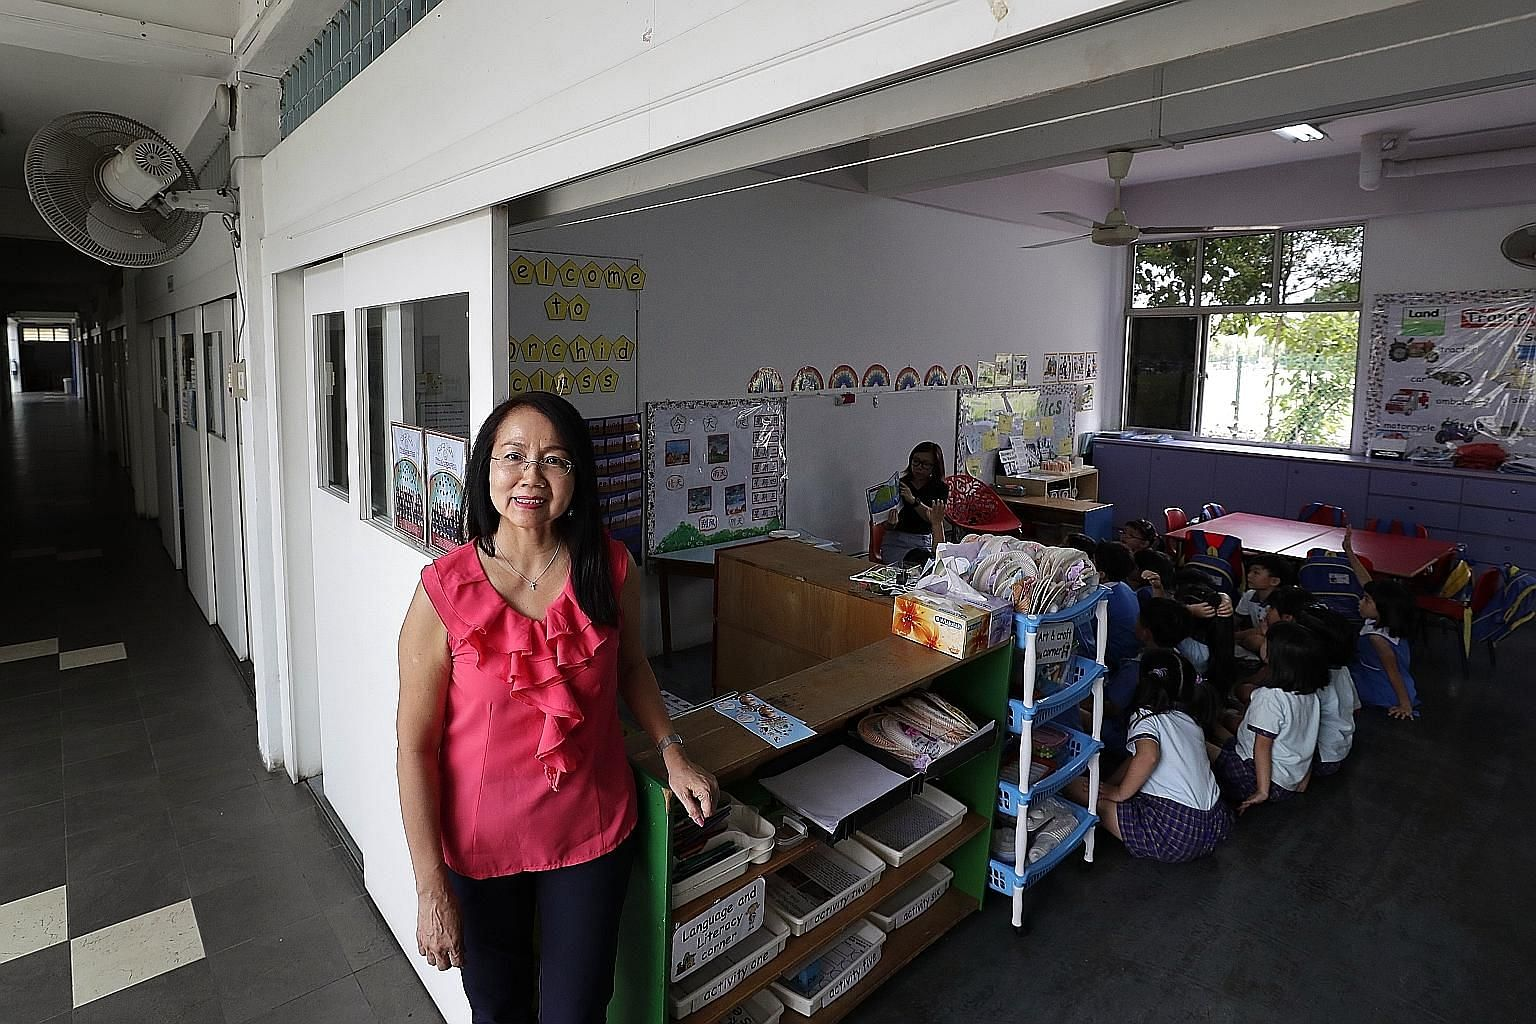 Mrs Agnes Chee, principal of New Life Kindergarten, said her centre introduced enrichment activities over the past five years and launched a robotics and coding class this year.